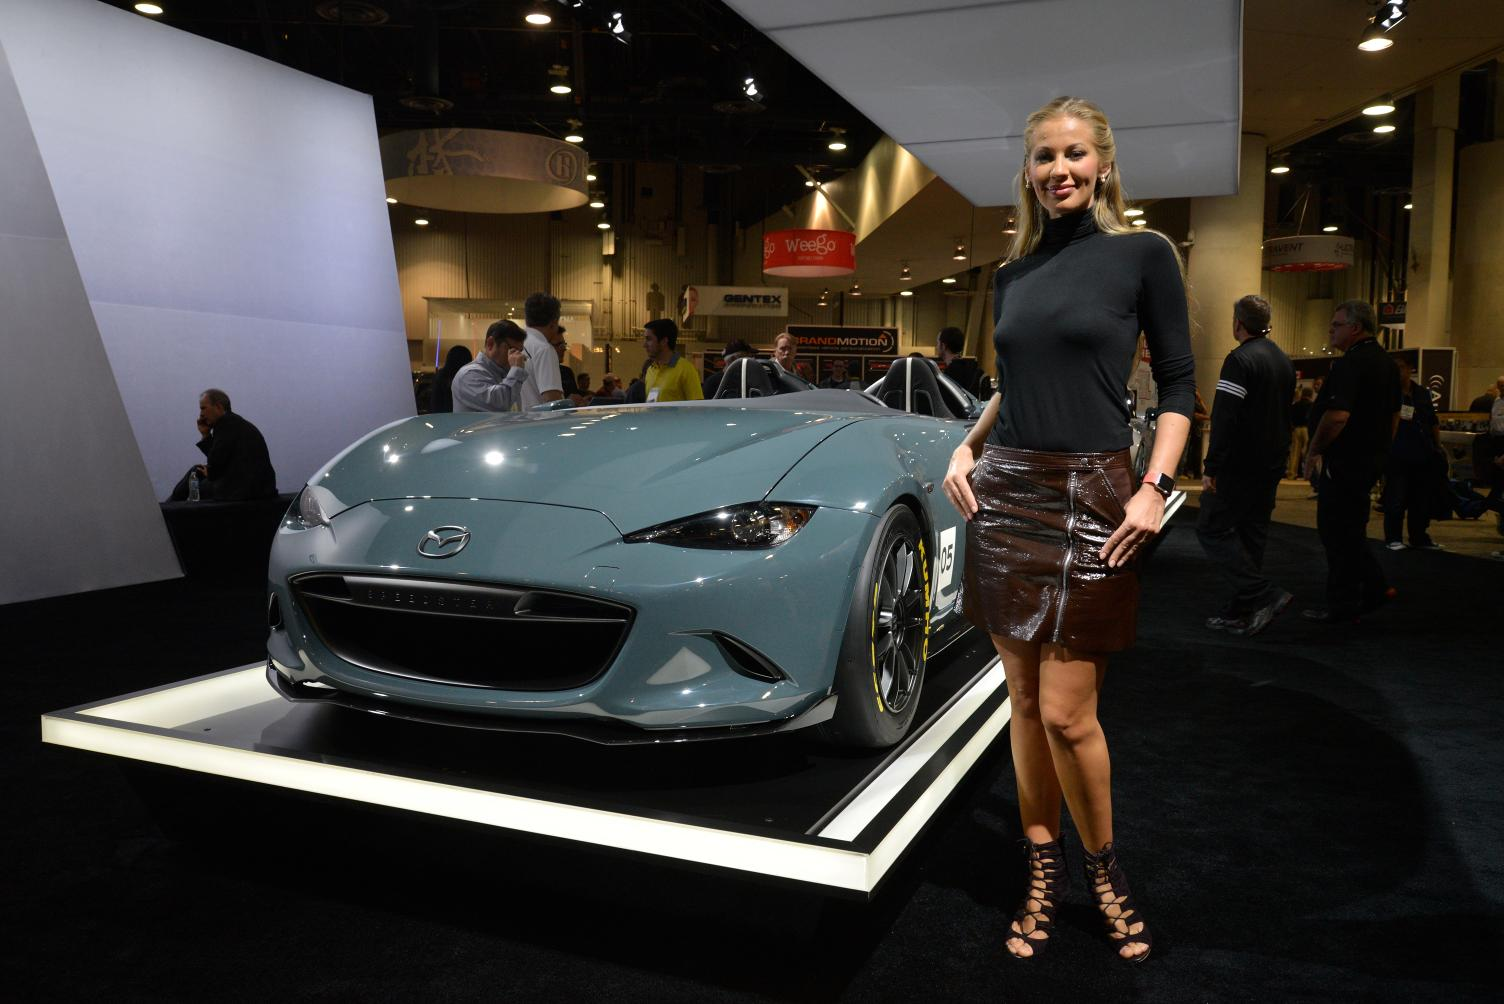 https://s1.cdn.autoevolution.com/images/news/gallery/2016-mazda-mx-5-speedster-and-spyder-concepts-stun-sema-live-photos_4.jpg